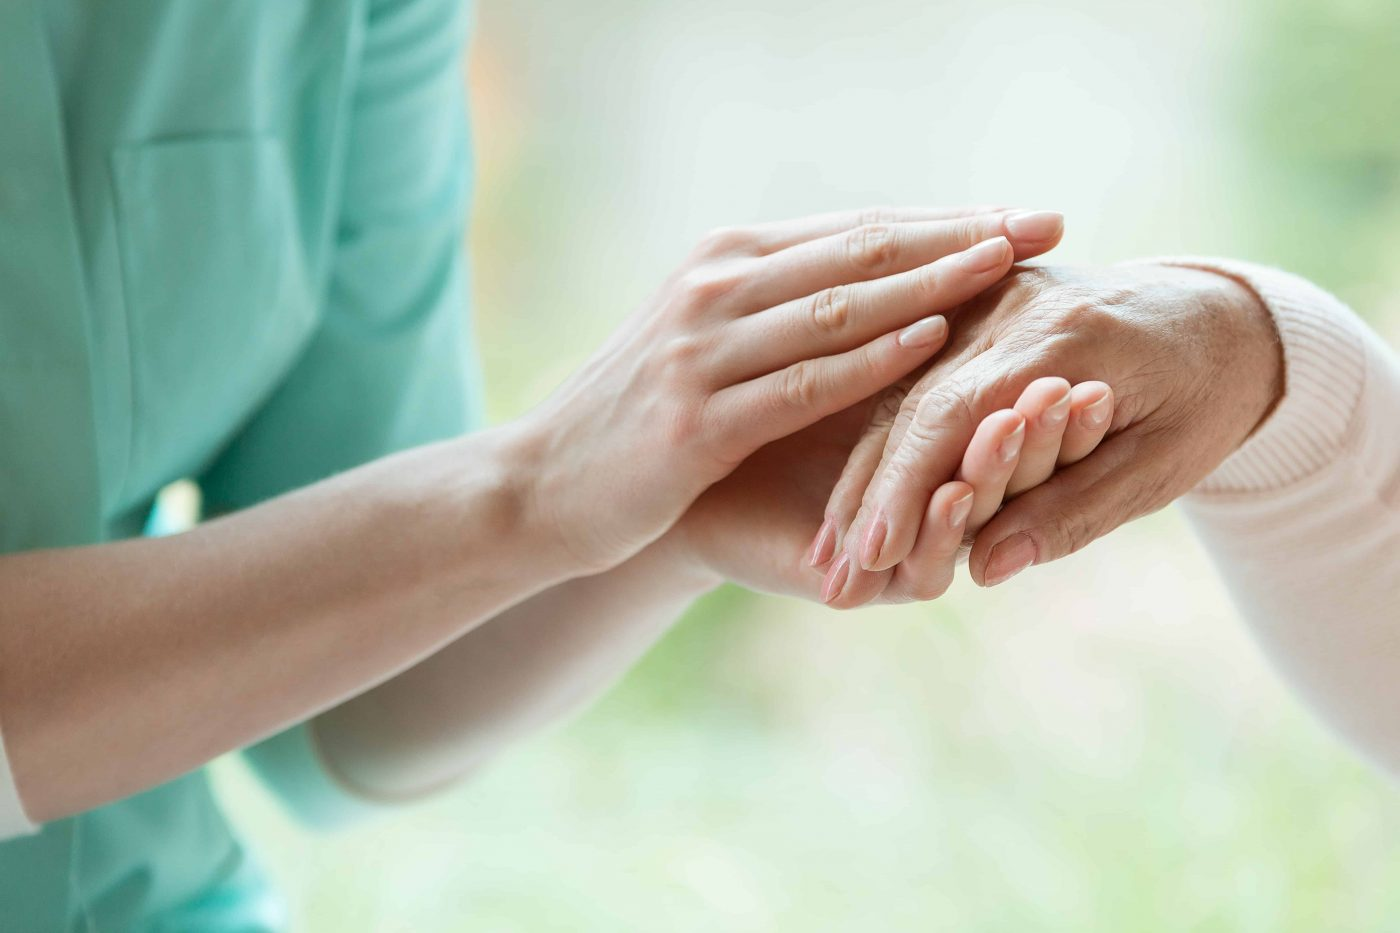 Young caretaker massaging pensioner's hand with Parkinson's disease